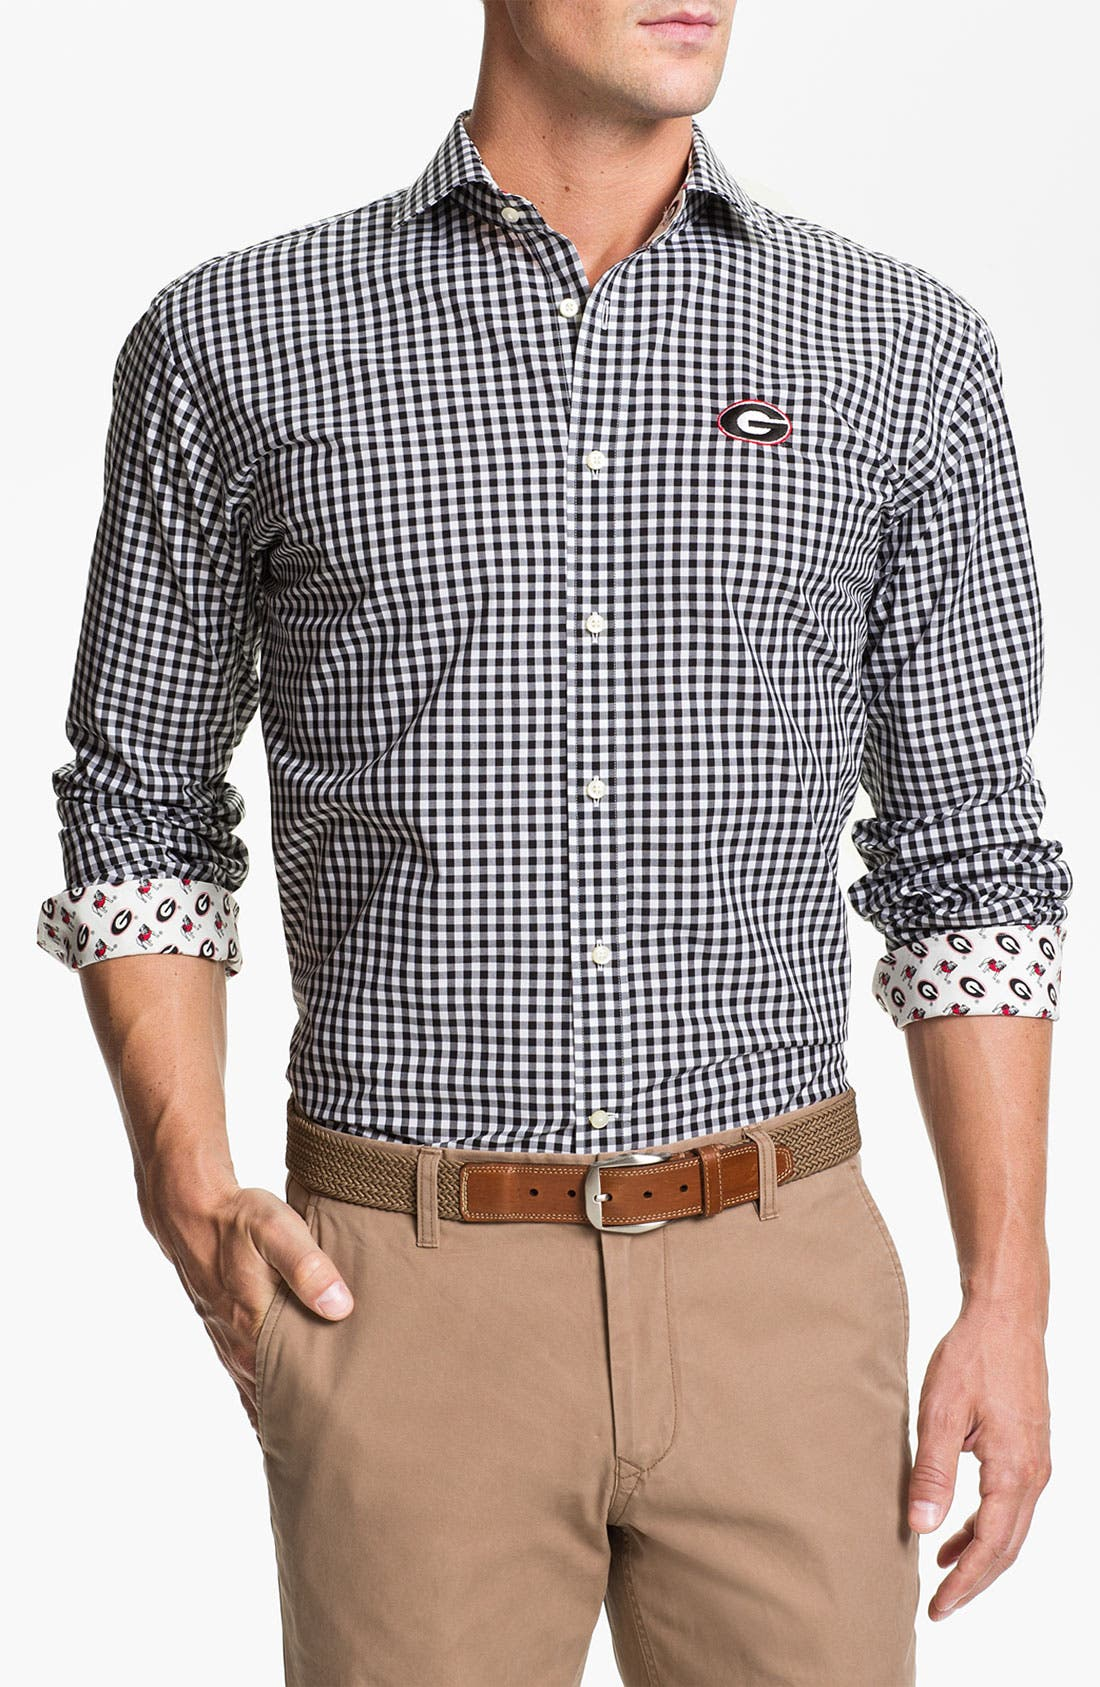 Alternate Image 1 Selected - Thomas Dean 'University of Georgia' Gingham Sport Shirt